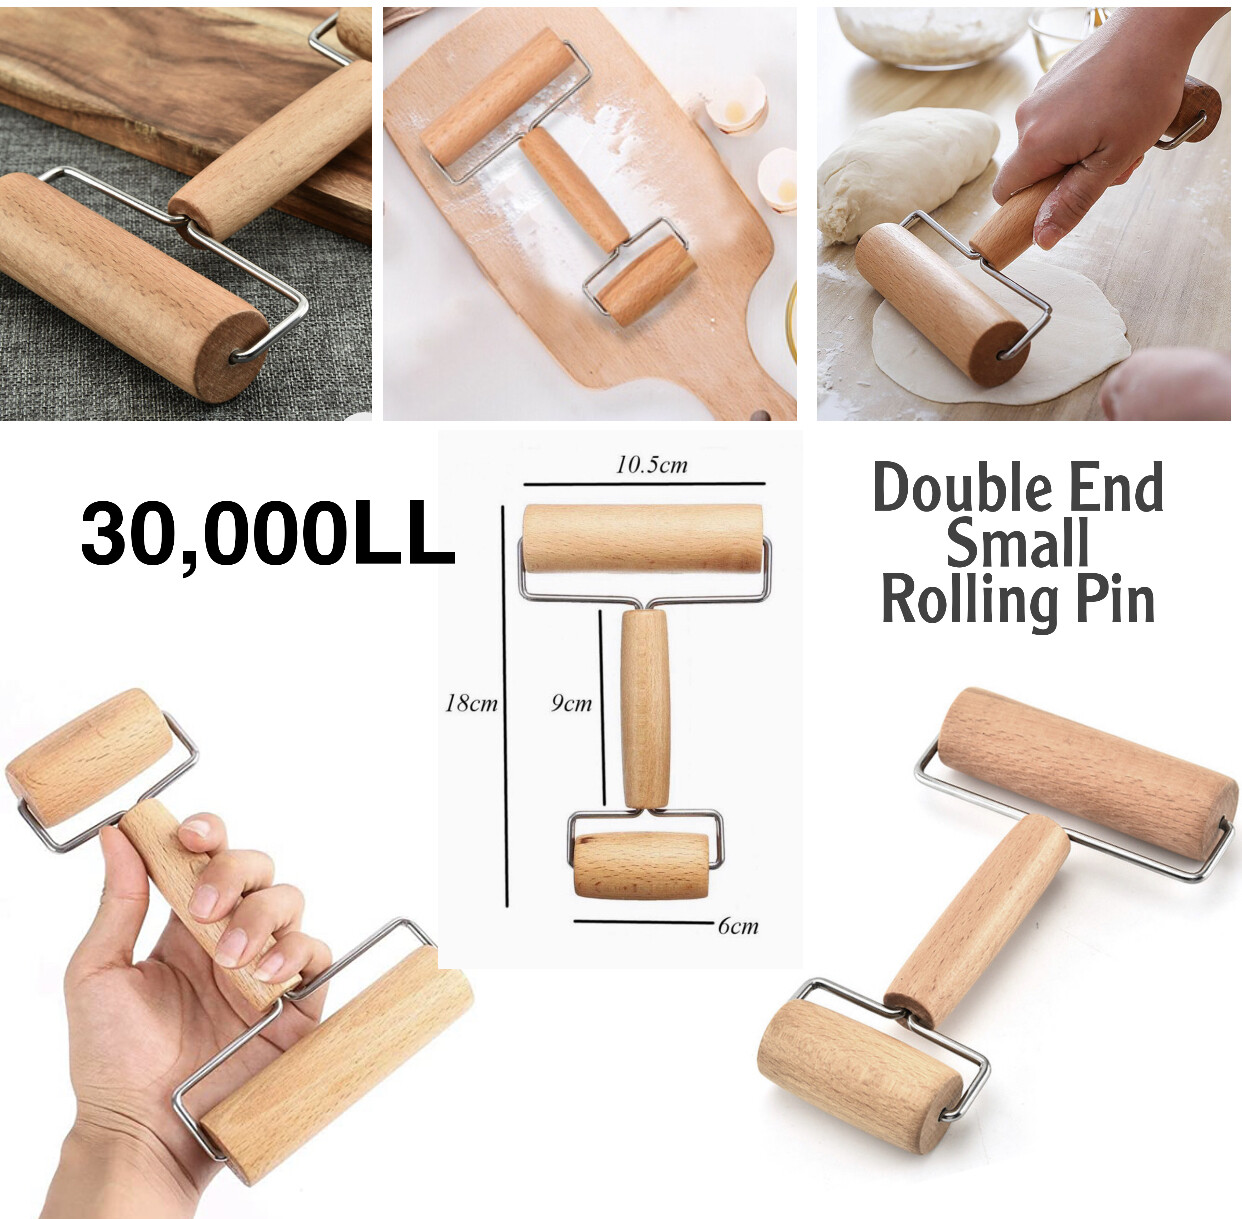 Double End Rolling Pin